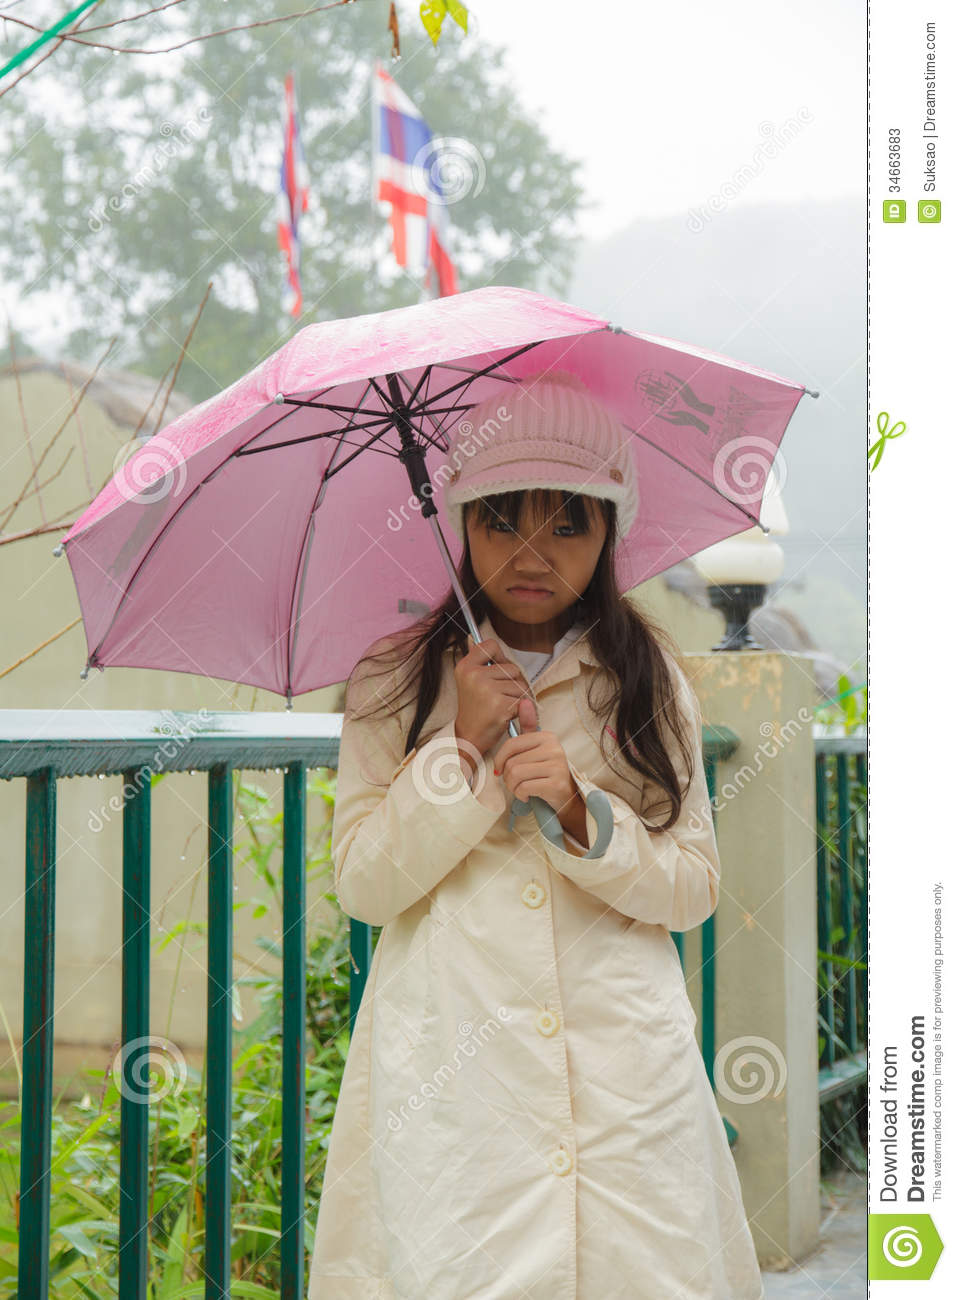 Girls and sadness. stock image. Image of umbrella, weather ...